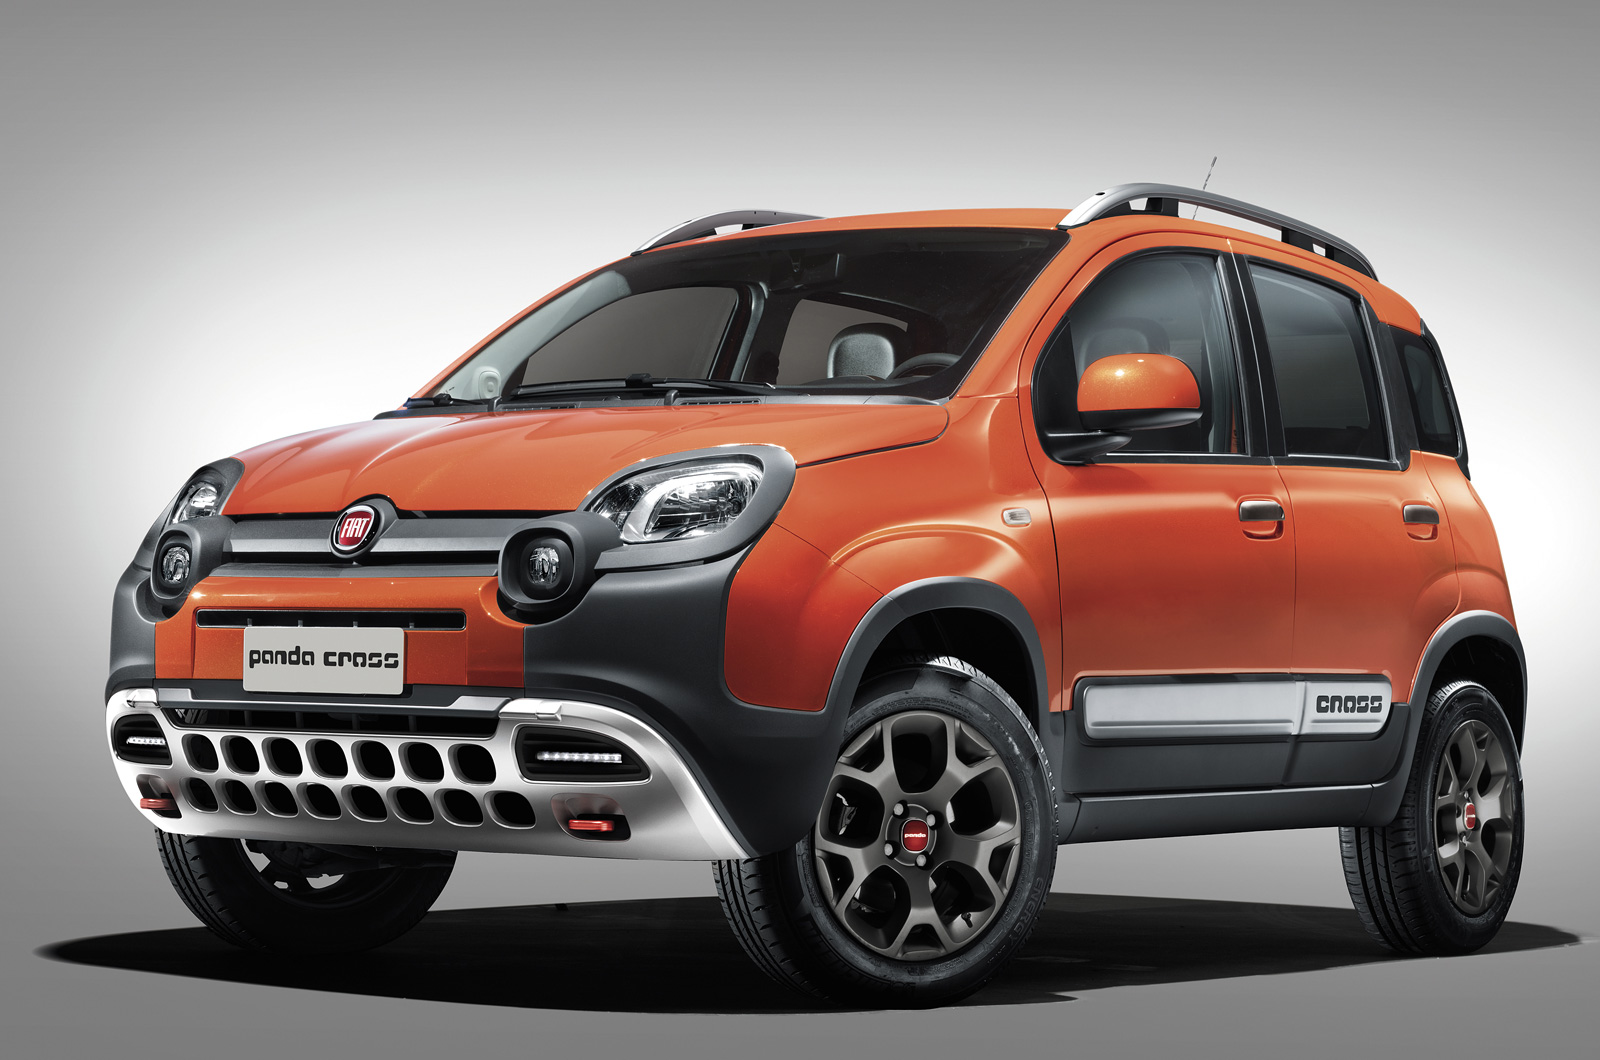 geneva 2014 new fiat panda cross revealed autocar india. Black Bedroom Furniture Sets. Home Design Ideas